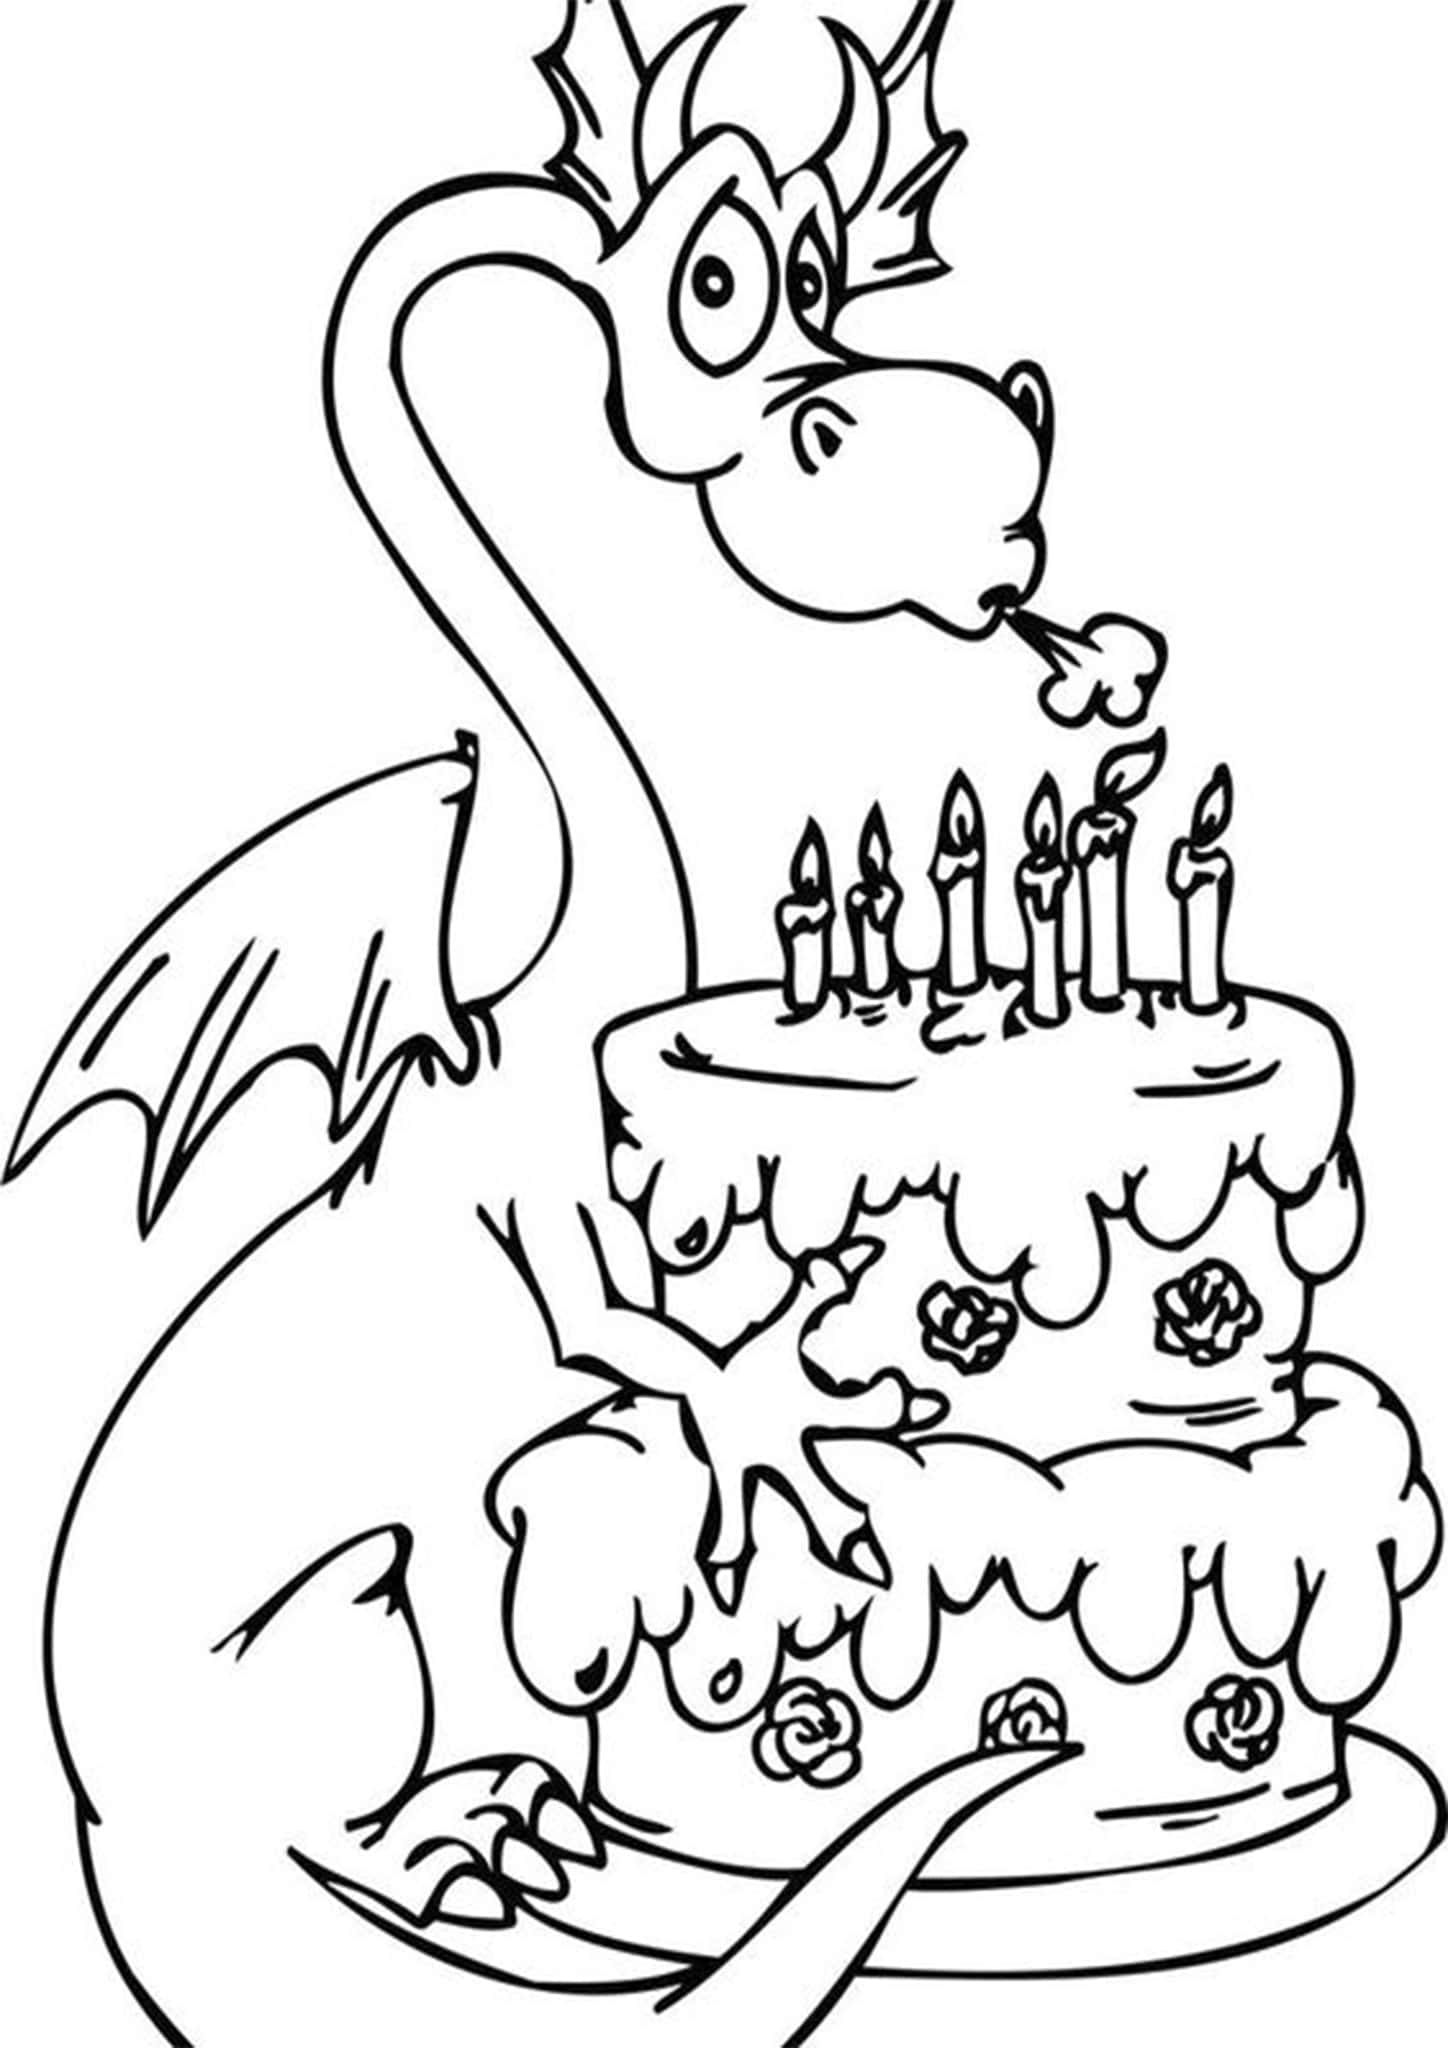 Free Easy To Print Cake Coloring Pages Happy Birthday Coloring Pages Birthday Coloring Pages Printable Coloring Pages